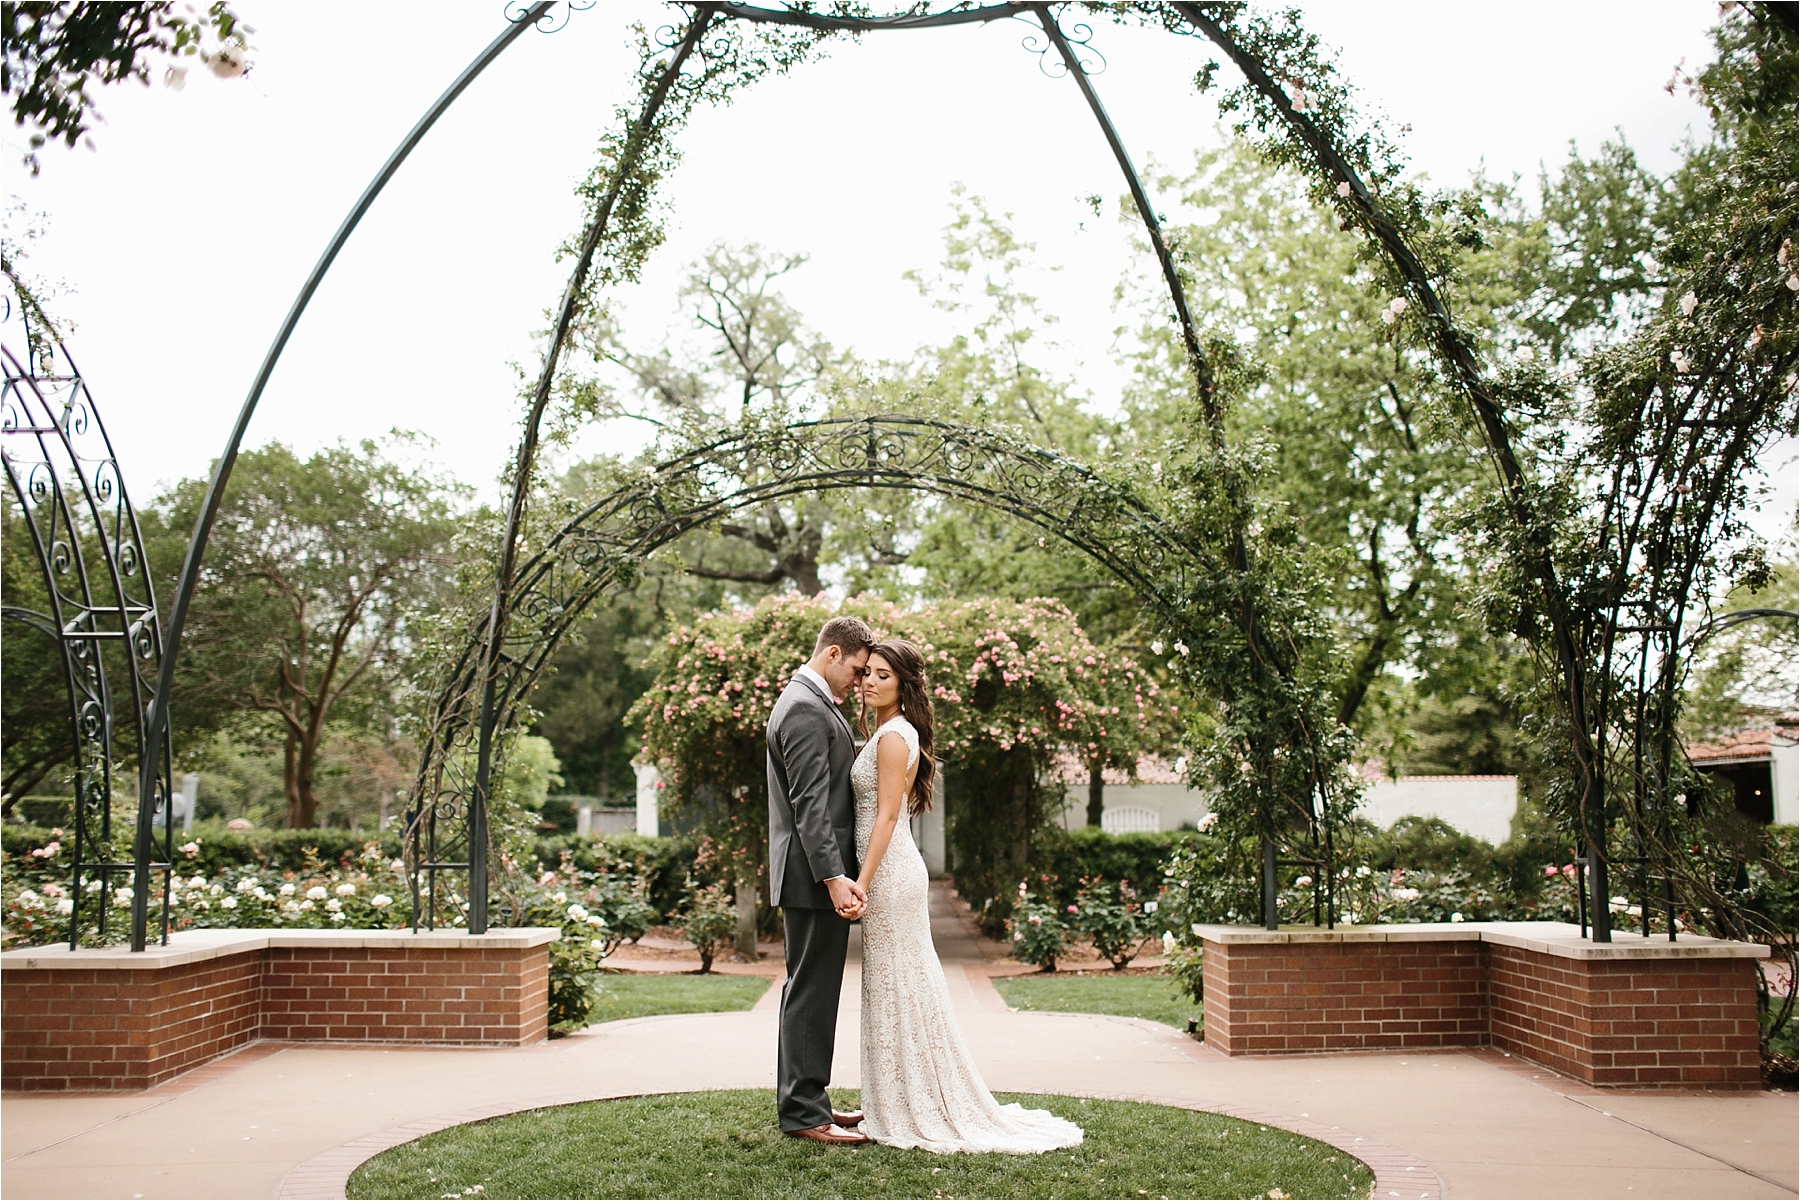 Devyn + Caden __ a Dallas Arboretum Garden Style Wedding by North Texas Wedding Photographer Rachel Meagan Photography __ 052